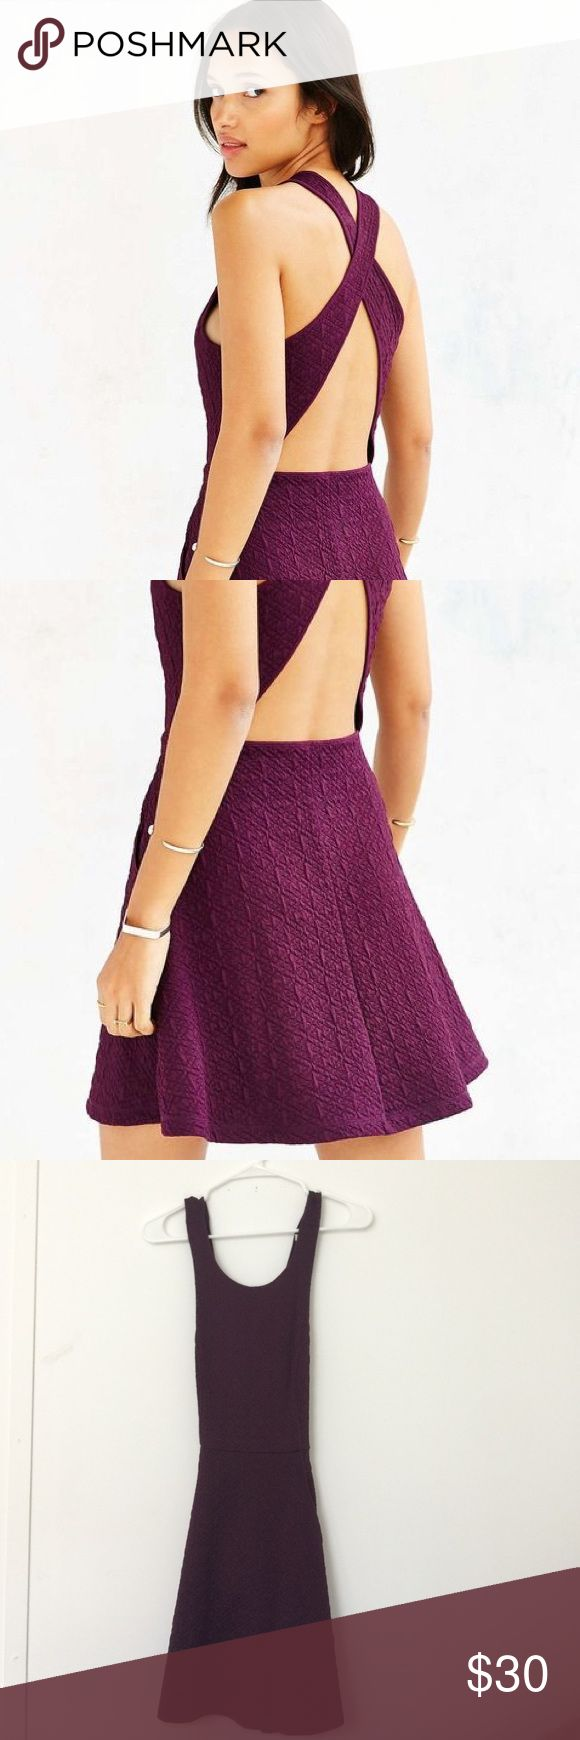 Purple backless skater dress Super cute backless purple skater dress. Flattering for all body types. Awesome for any night out! Never worn. Dresses Mini